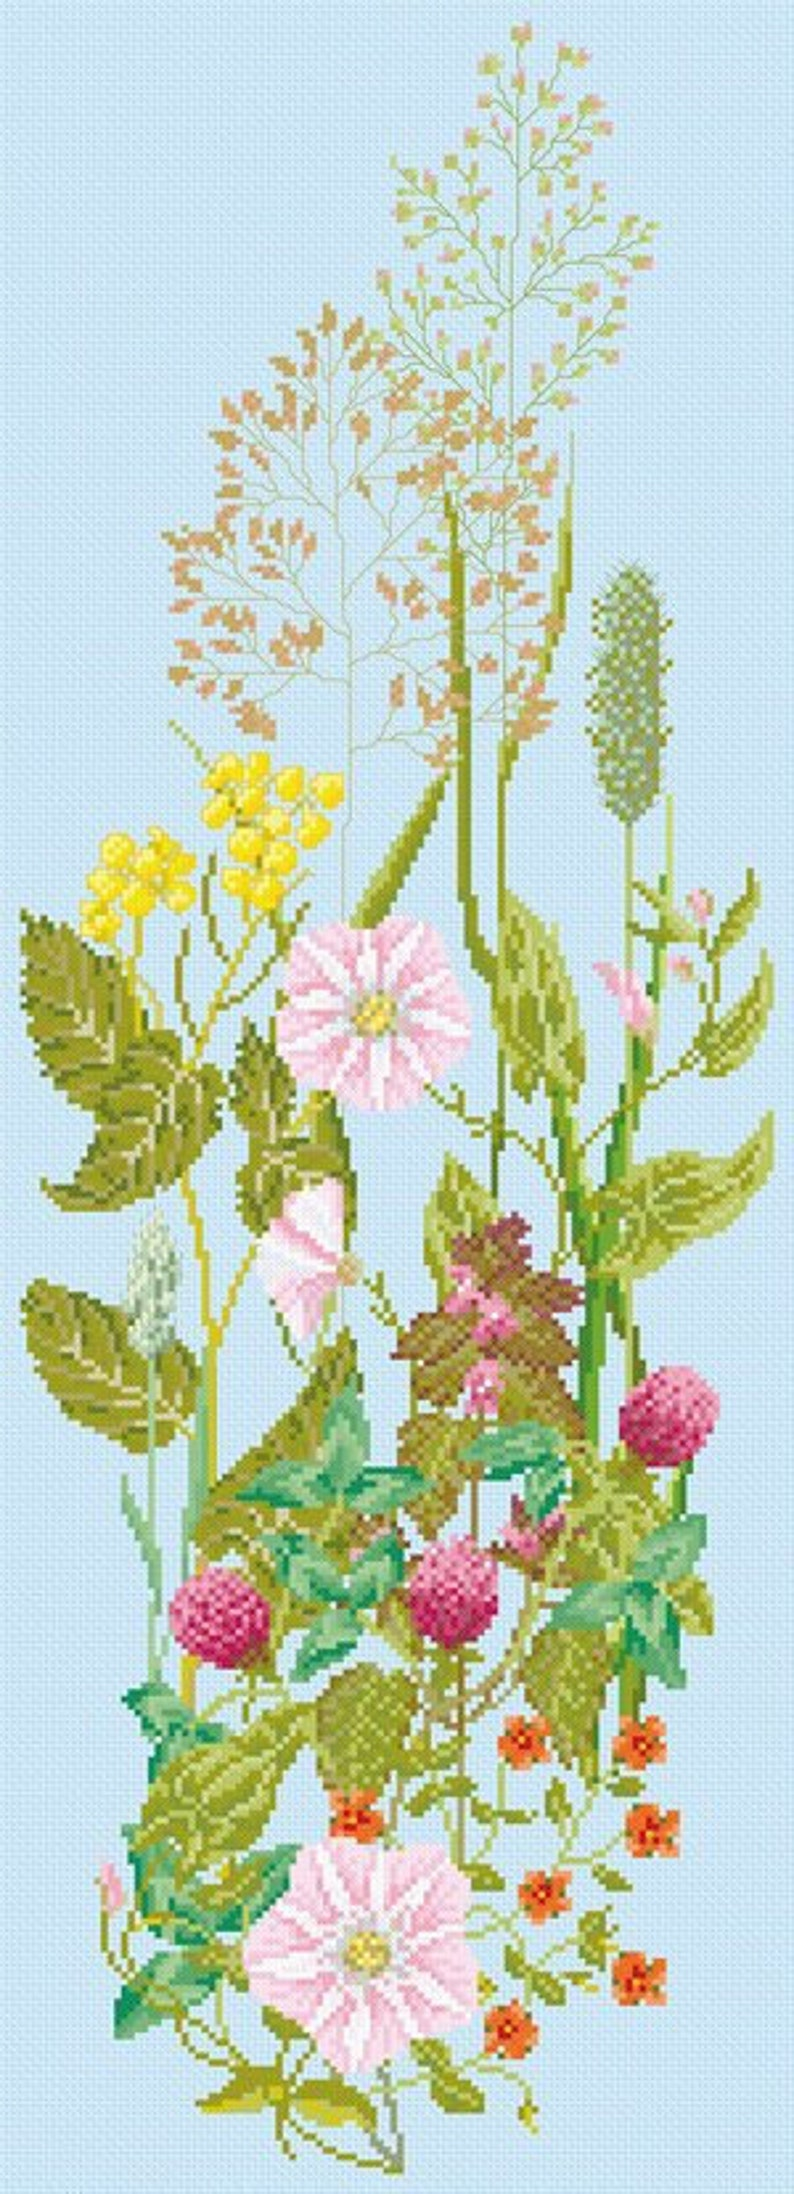 Cross Stitch Download 'Flowers From a Summer Meadow' image 0